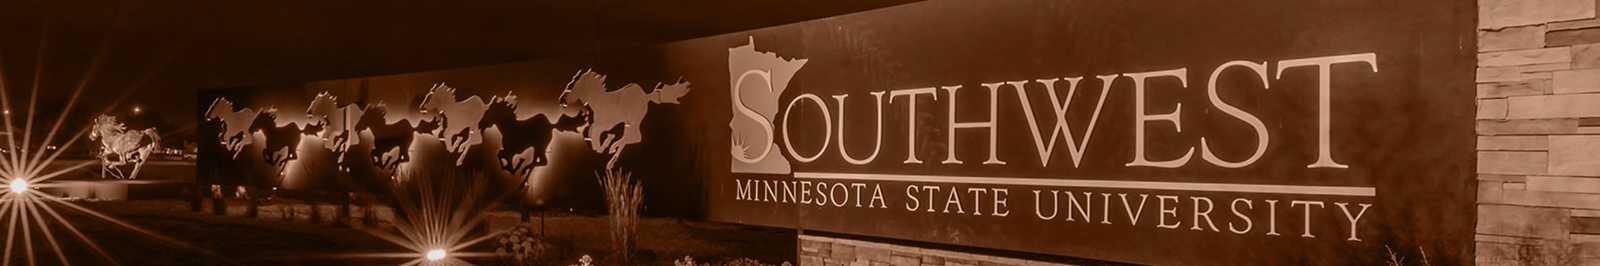 Southwest Minnesota State University | Theatre Ticketing